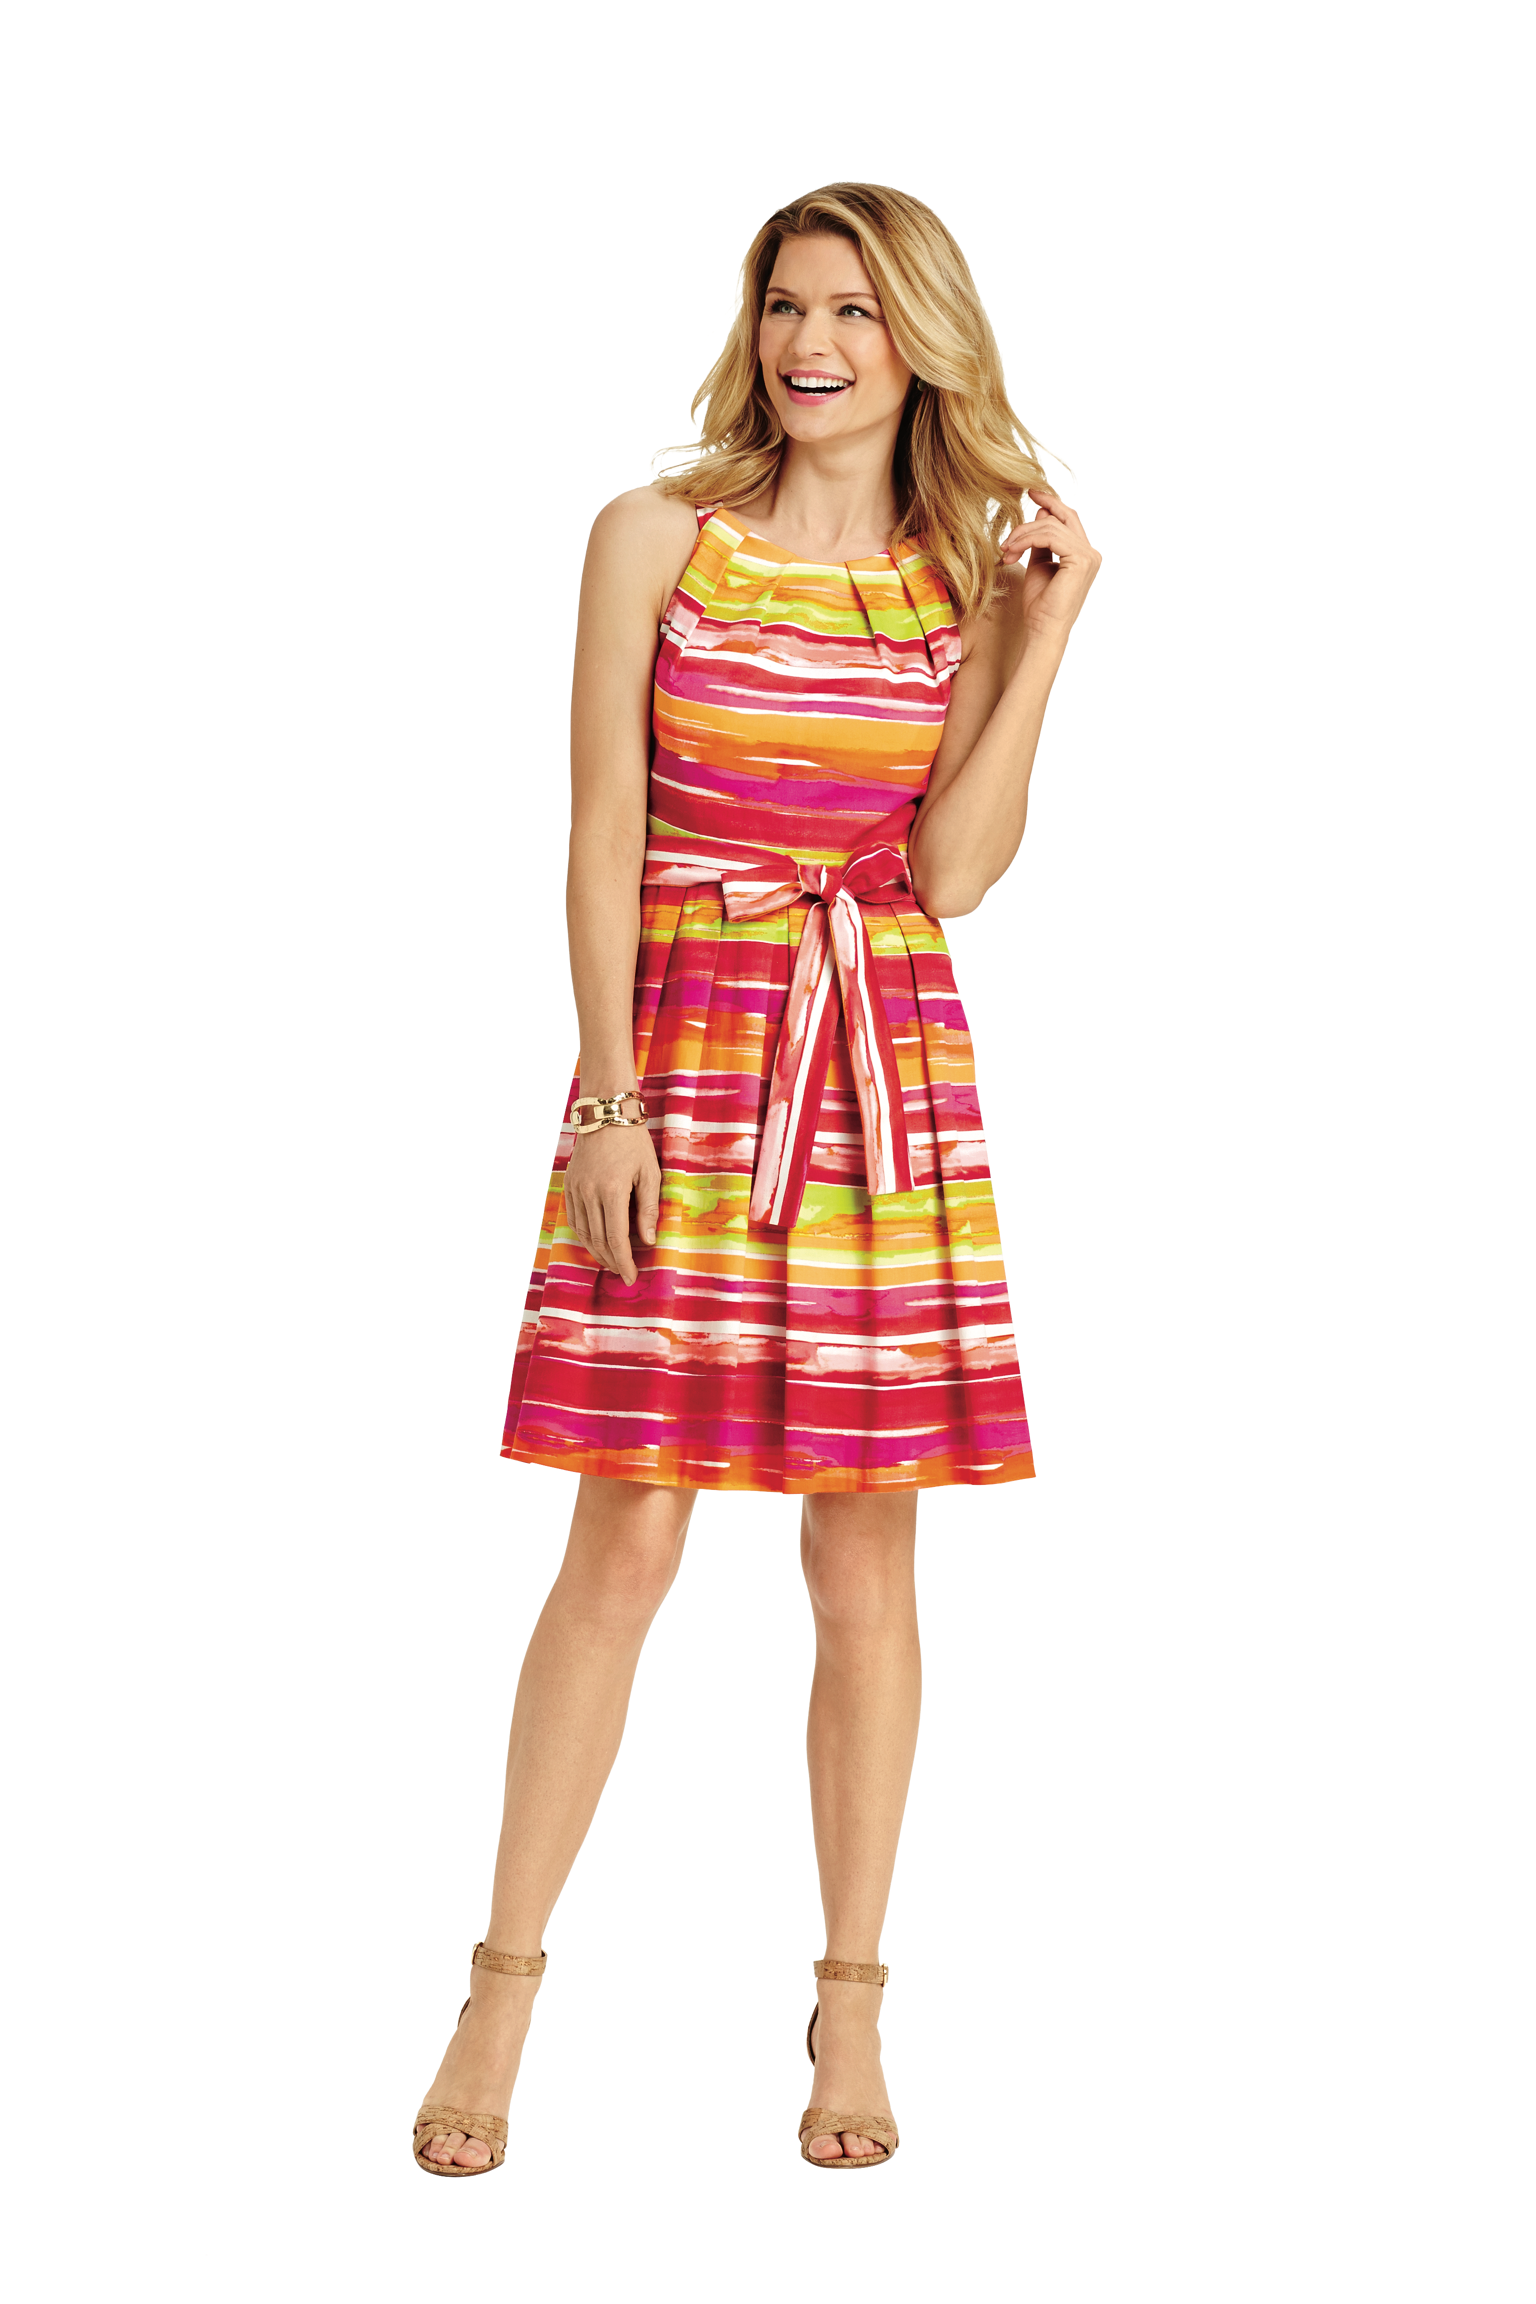 This classic fit and flare dress with paintbrush stripe will